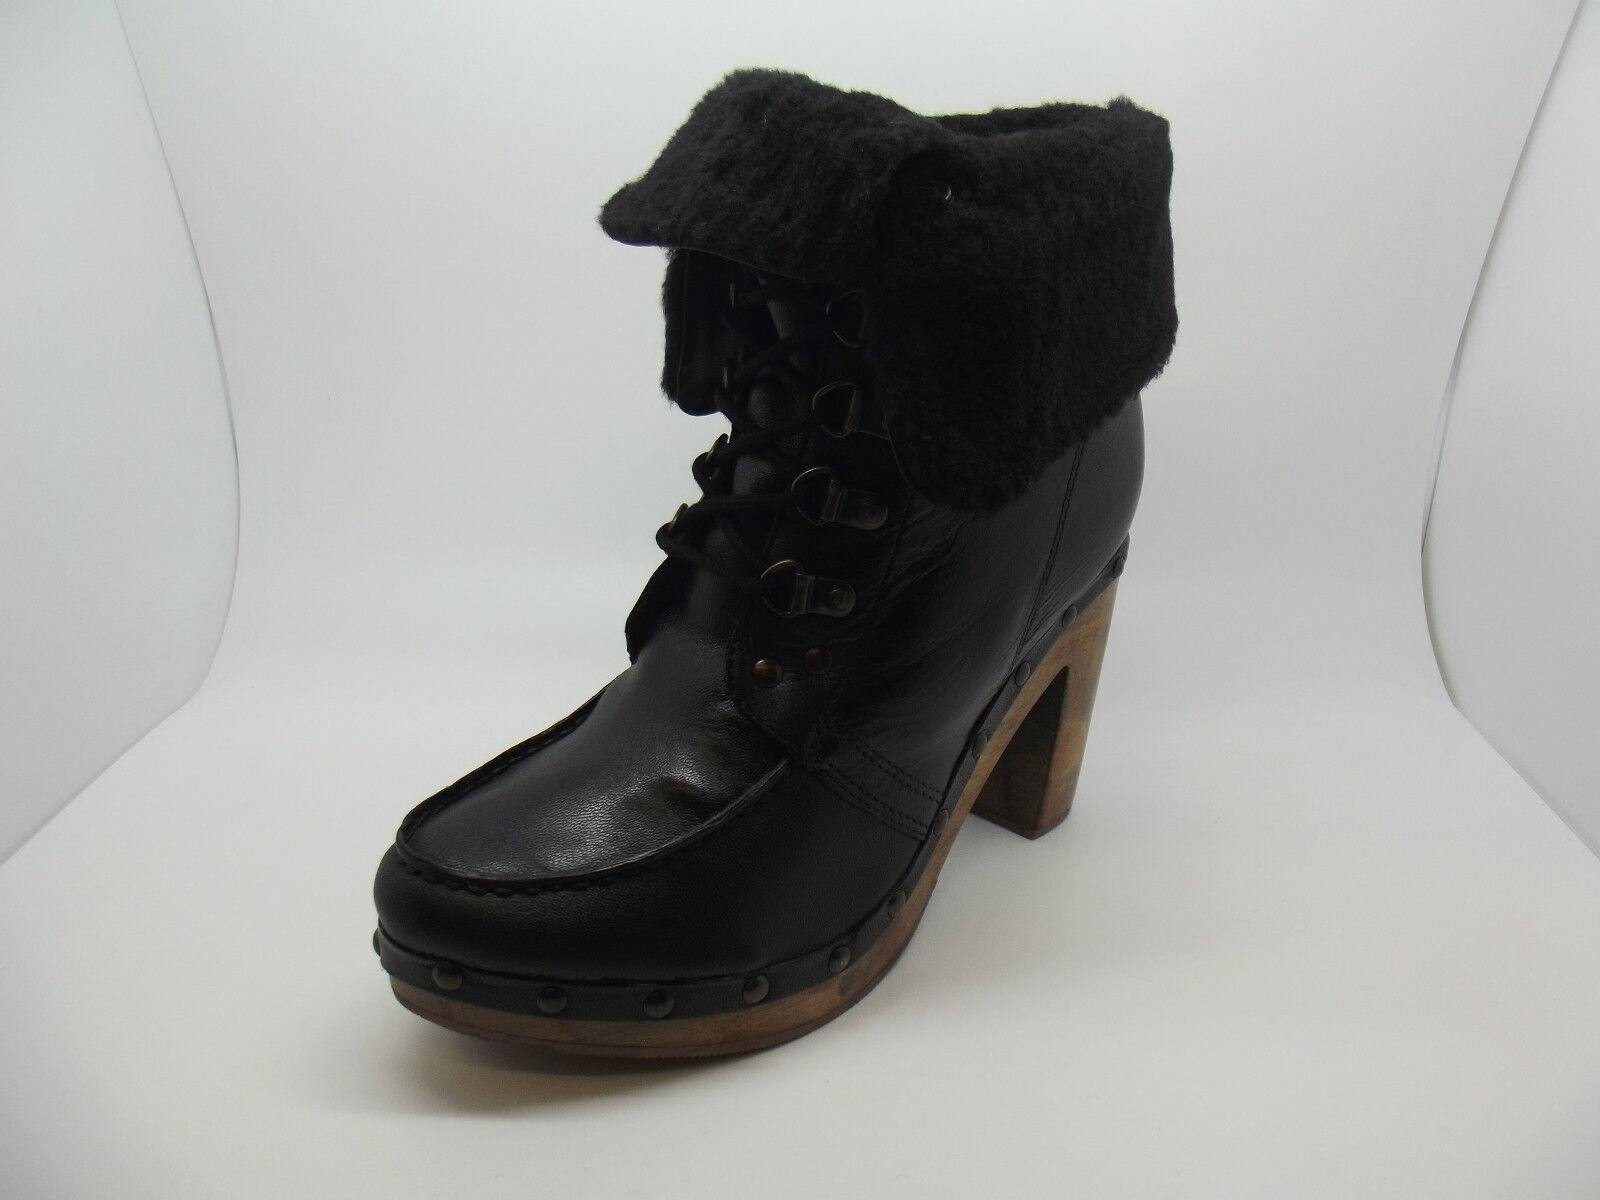 NEW LADIES GIRLS EX TOPSHOP ARELLA BLACK LEATHER FUR LINED ANKLE BOOTS HEELS 3-8